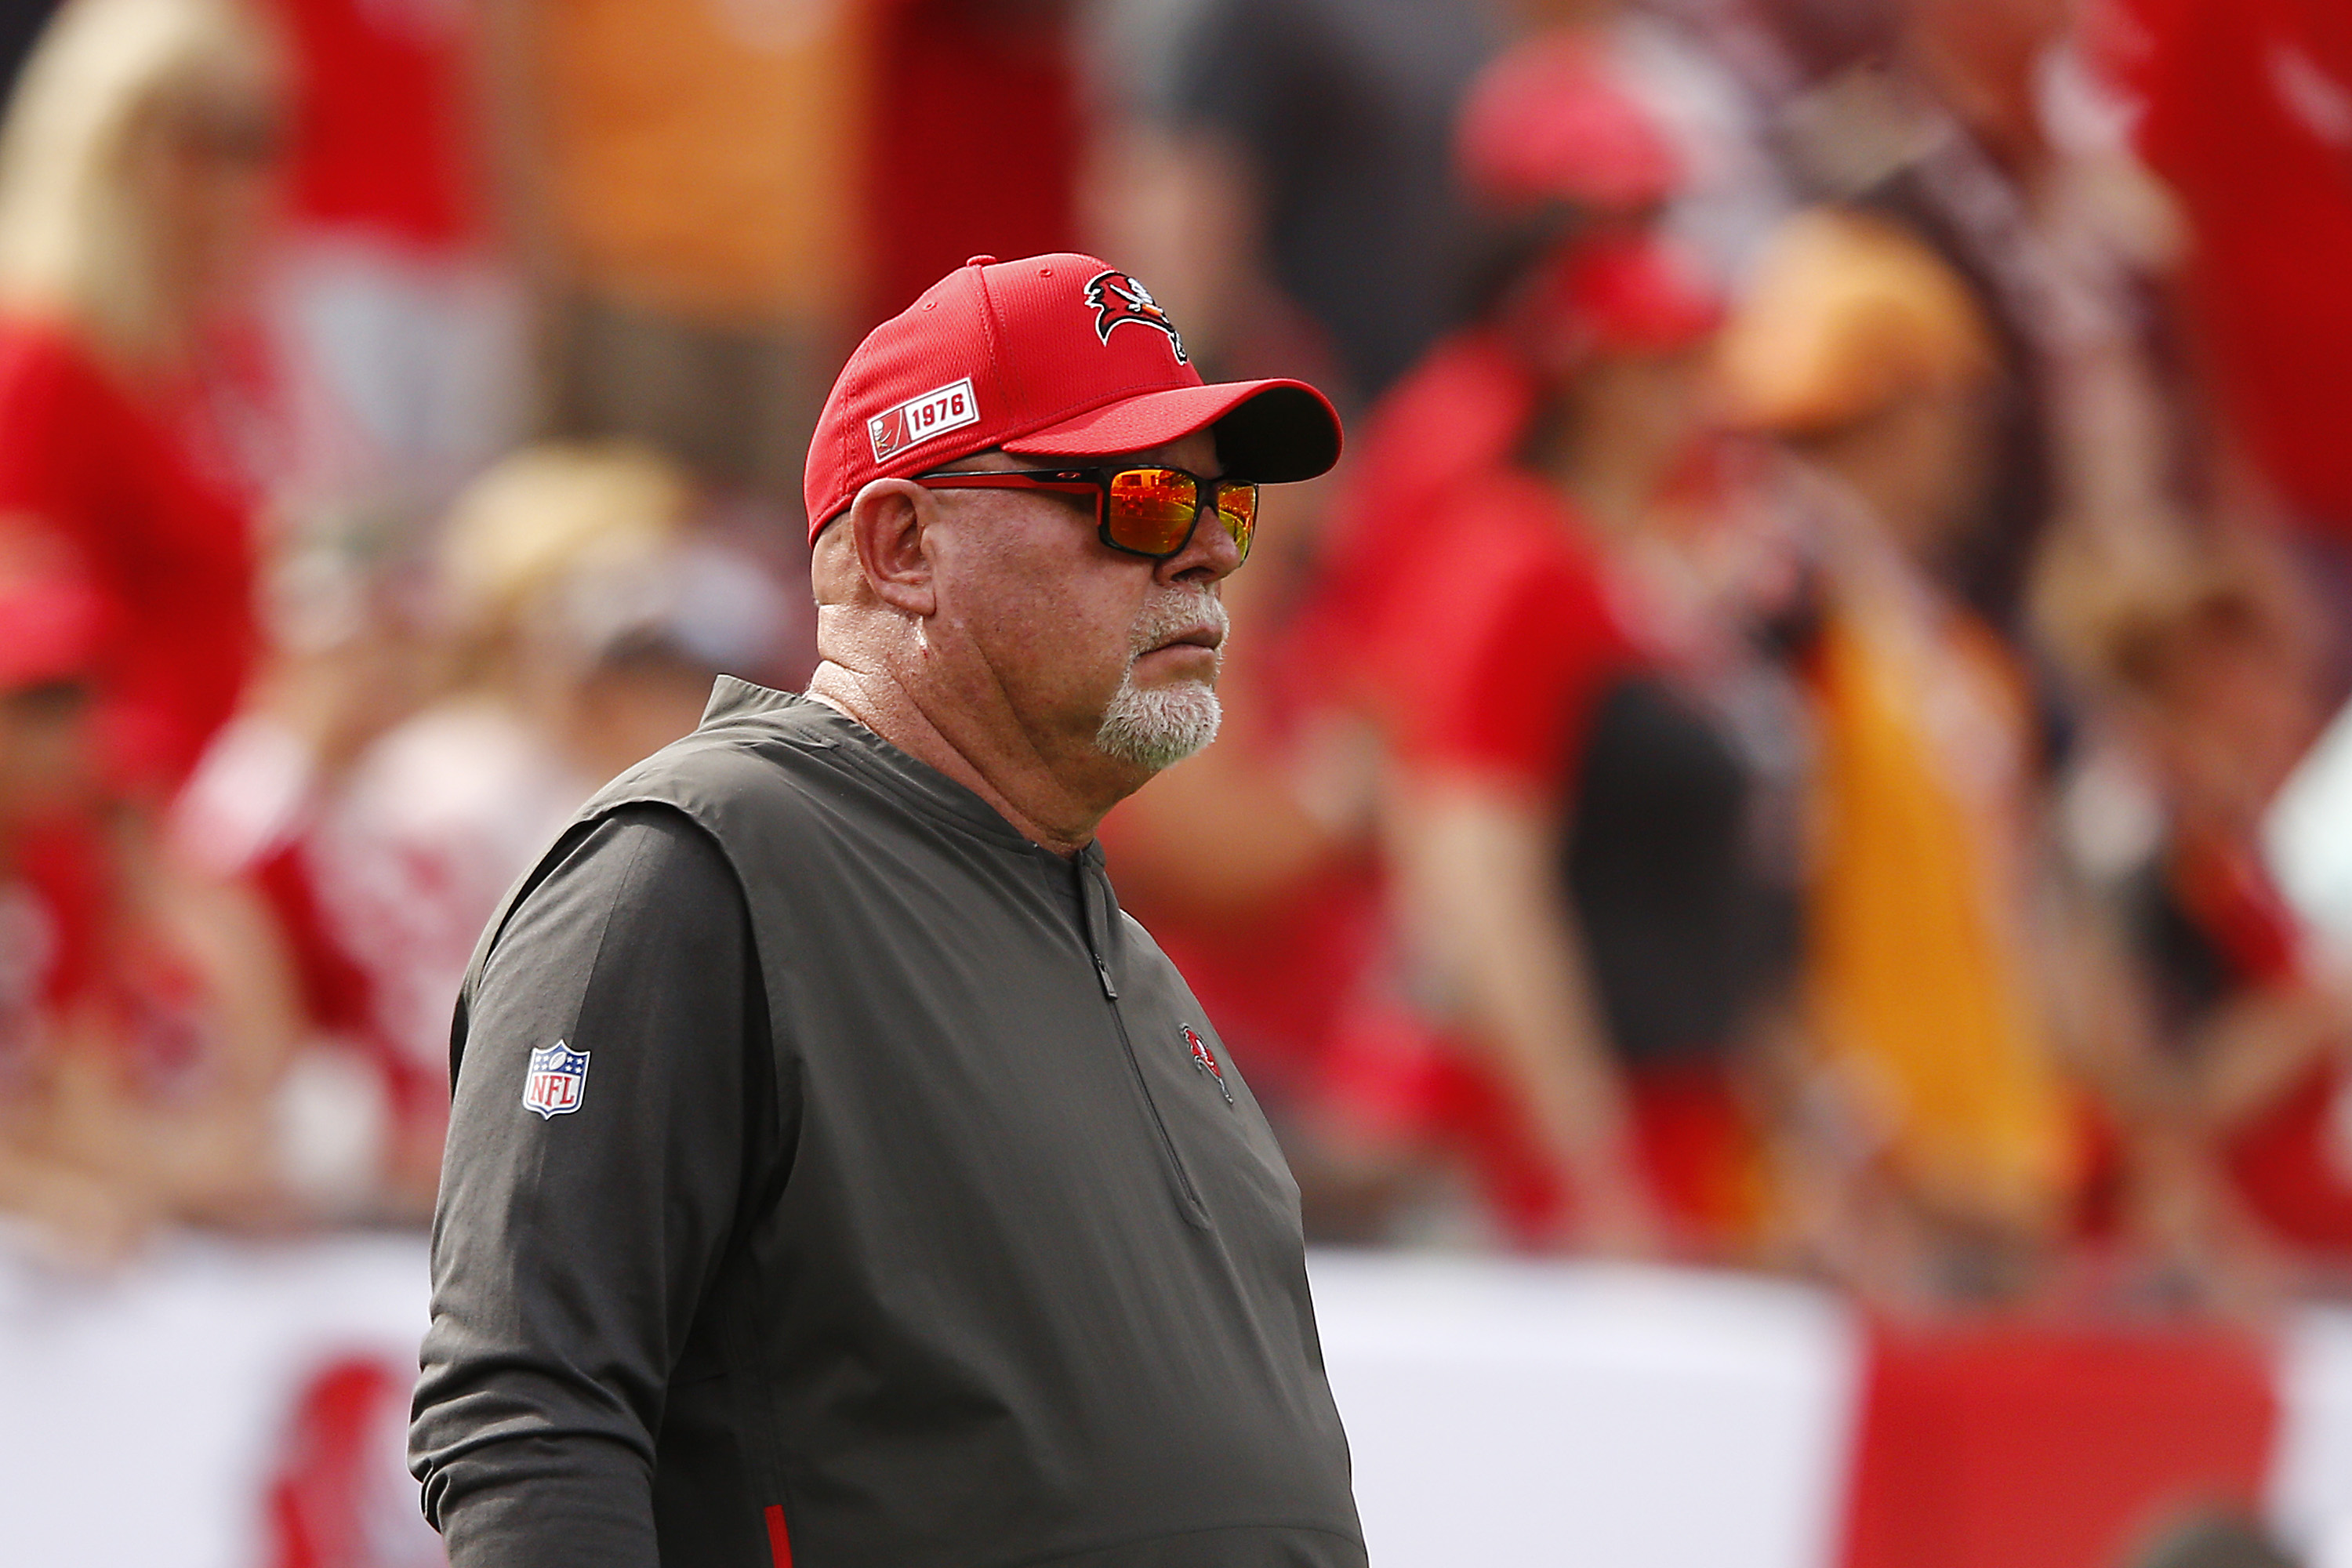 Head coach Bruce Arians of the Tampa Bay Buccaneers